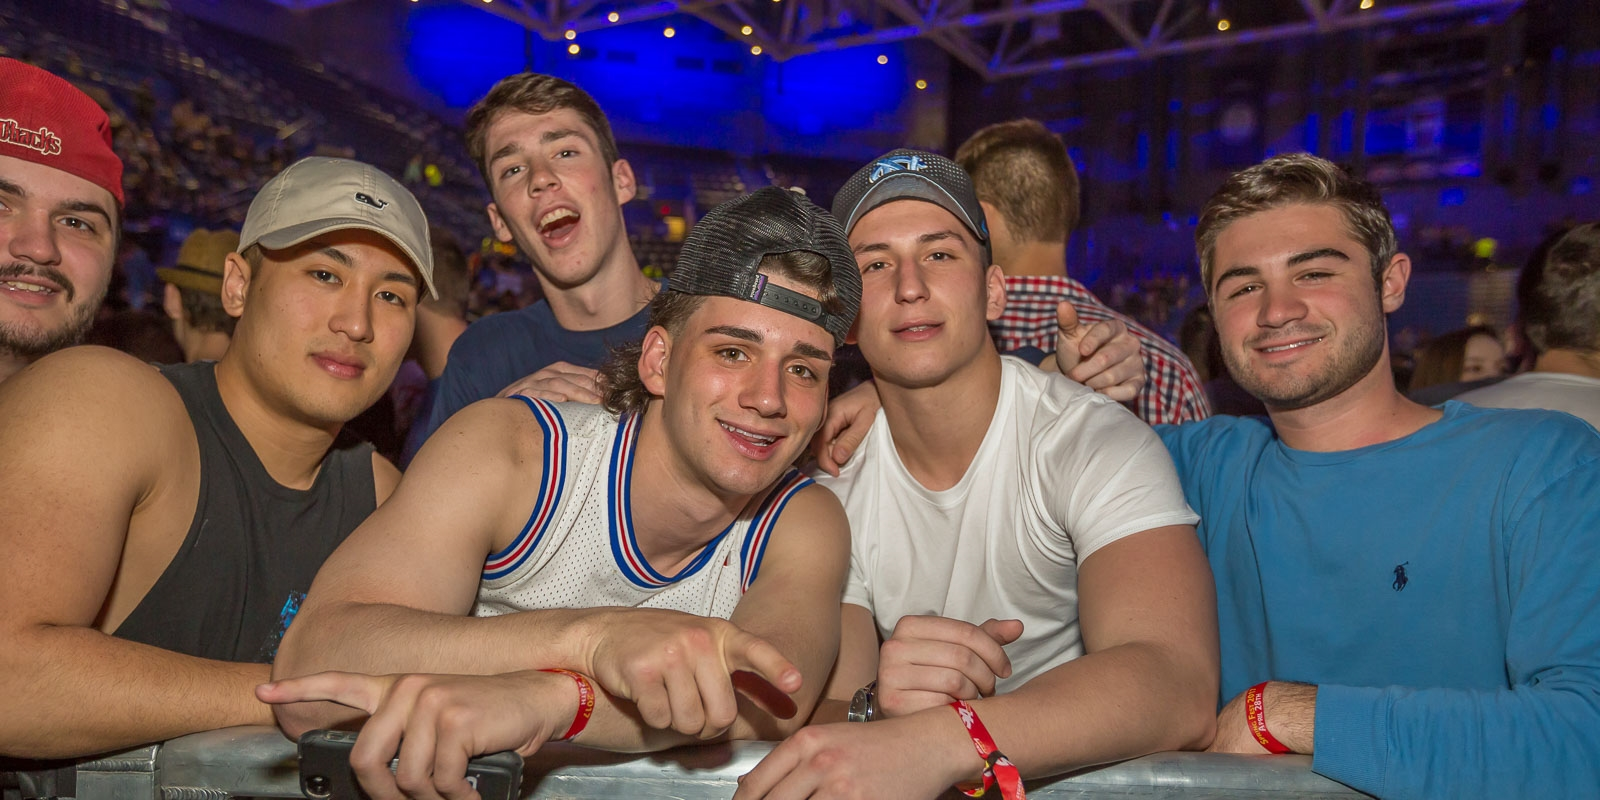 University at Buffalo students celebrated the tail-end of the school year at Springfest, featuring Wiz Khalifa, Zara Larsson and Hippie Sabotage on Friday, April 28, 2017 in Alumni Arena on North Campus. The concert was not open to the general public for the first time.